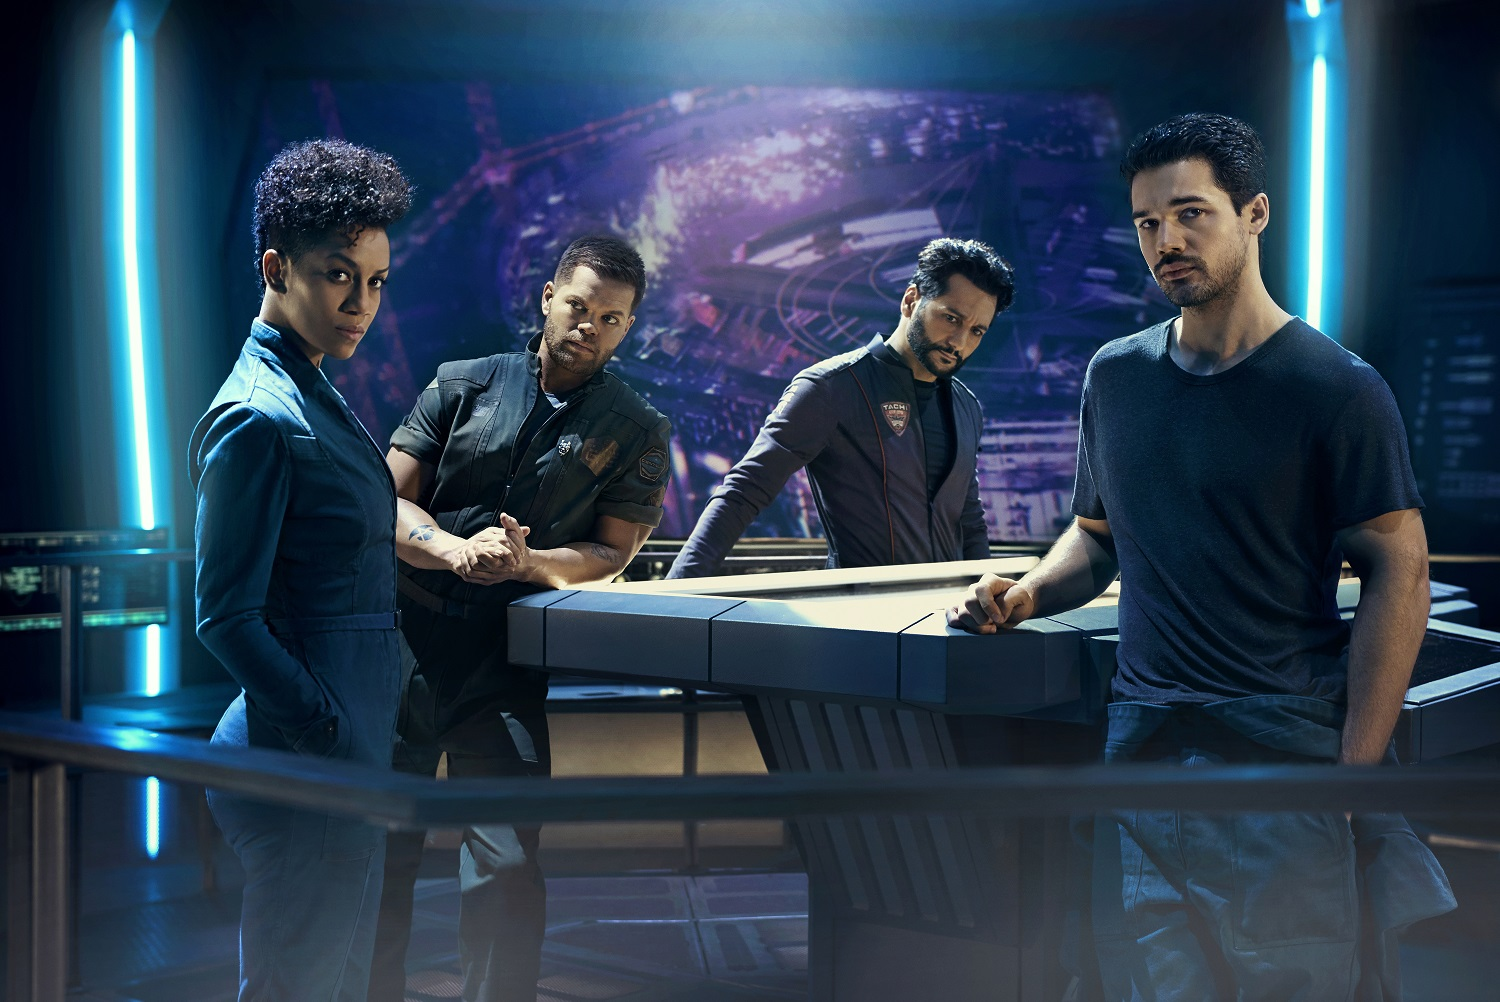 Dominique Tipper as Naomi Nagata, Wes Chatham as Amos Burton, Cas Anvar as Alex Kamal, and Steven Strait as James Holden on The Expanse